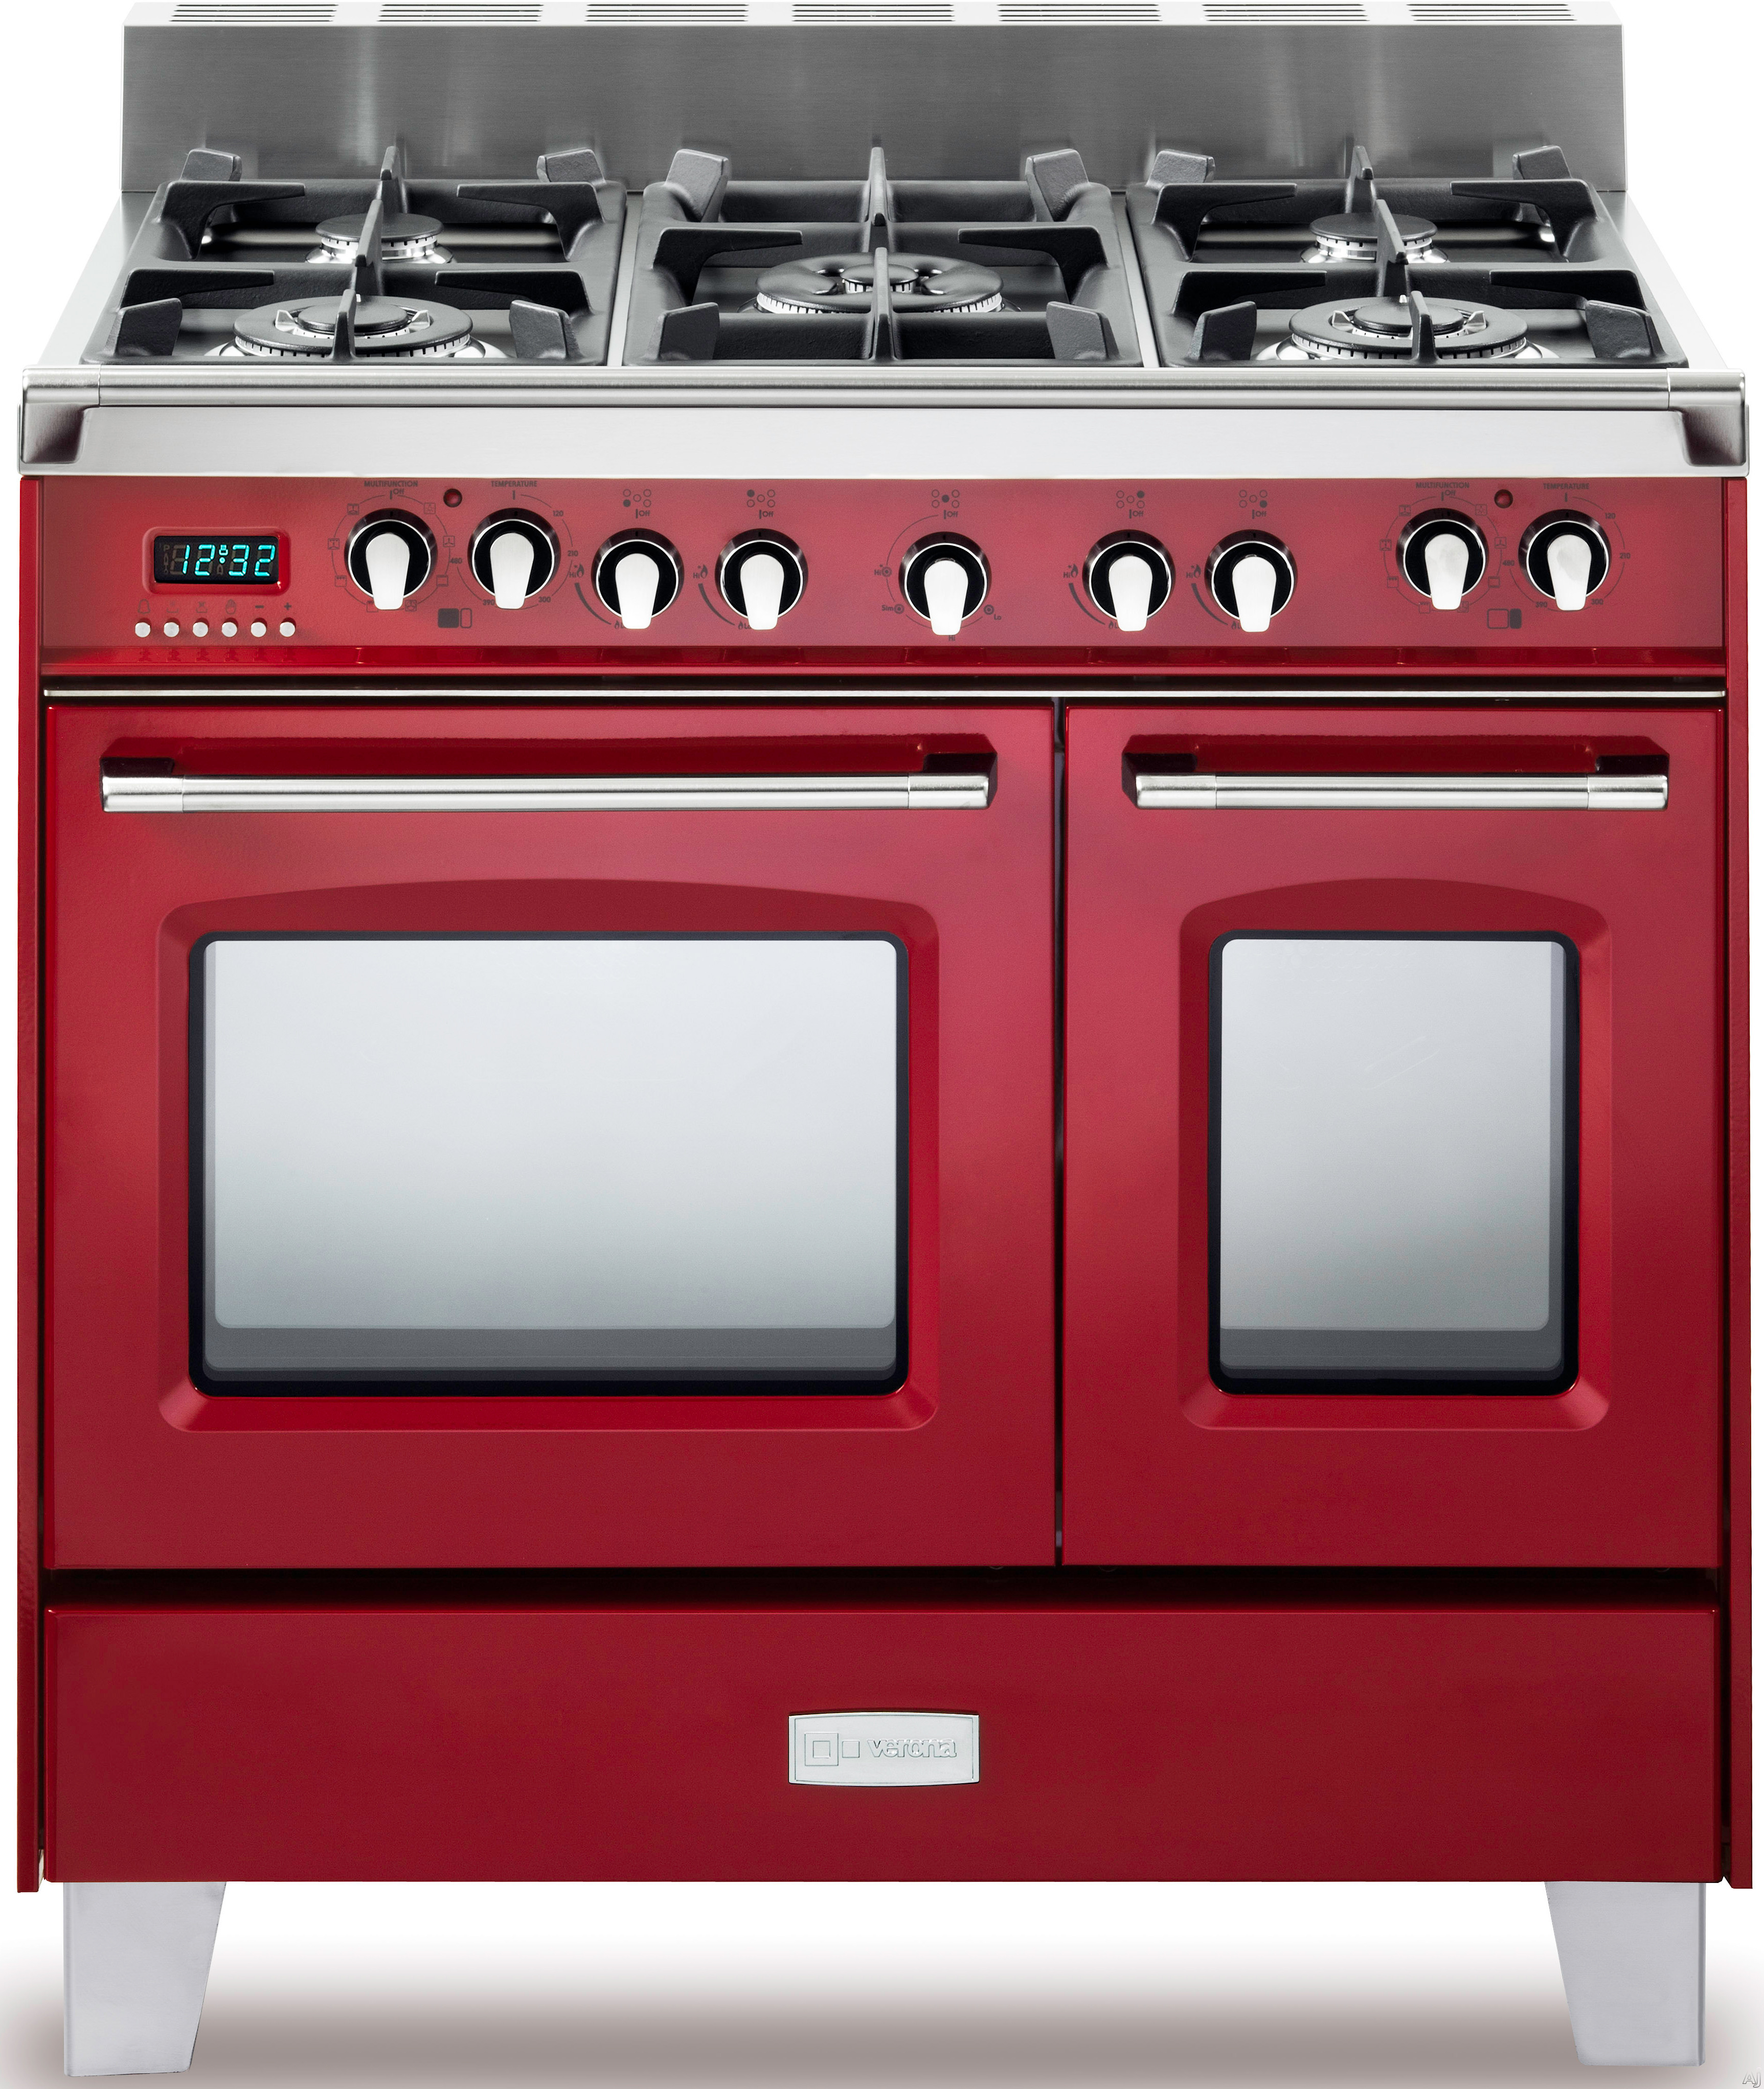 Verona Classic Series VCLFSGE365DR 36 Inch Pro Style Dual Fuel Range with 5 Sealed Burners 24 cu ft European Convection Main Oven Manual Clean Digital Clock Timer Glide Rack and Storage Drawer Gloss Red